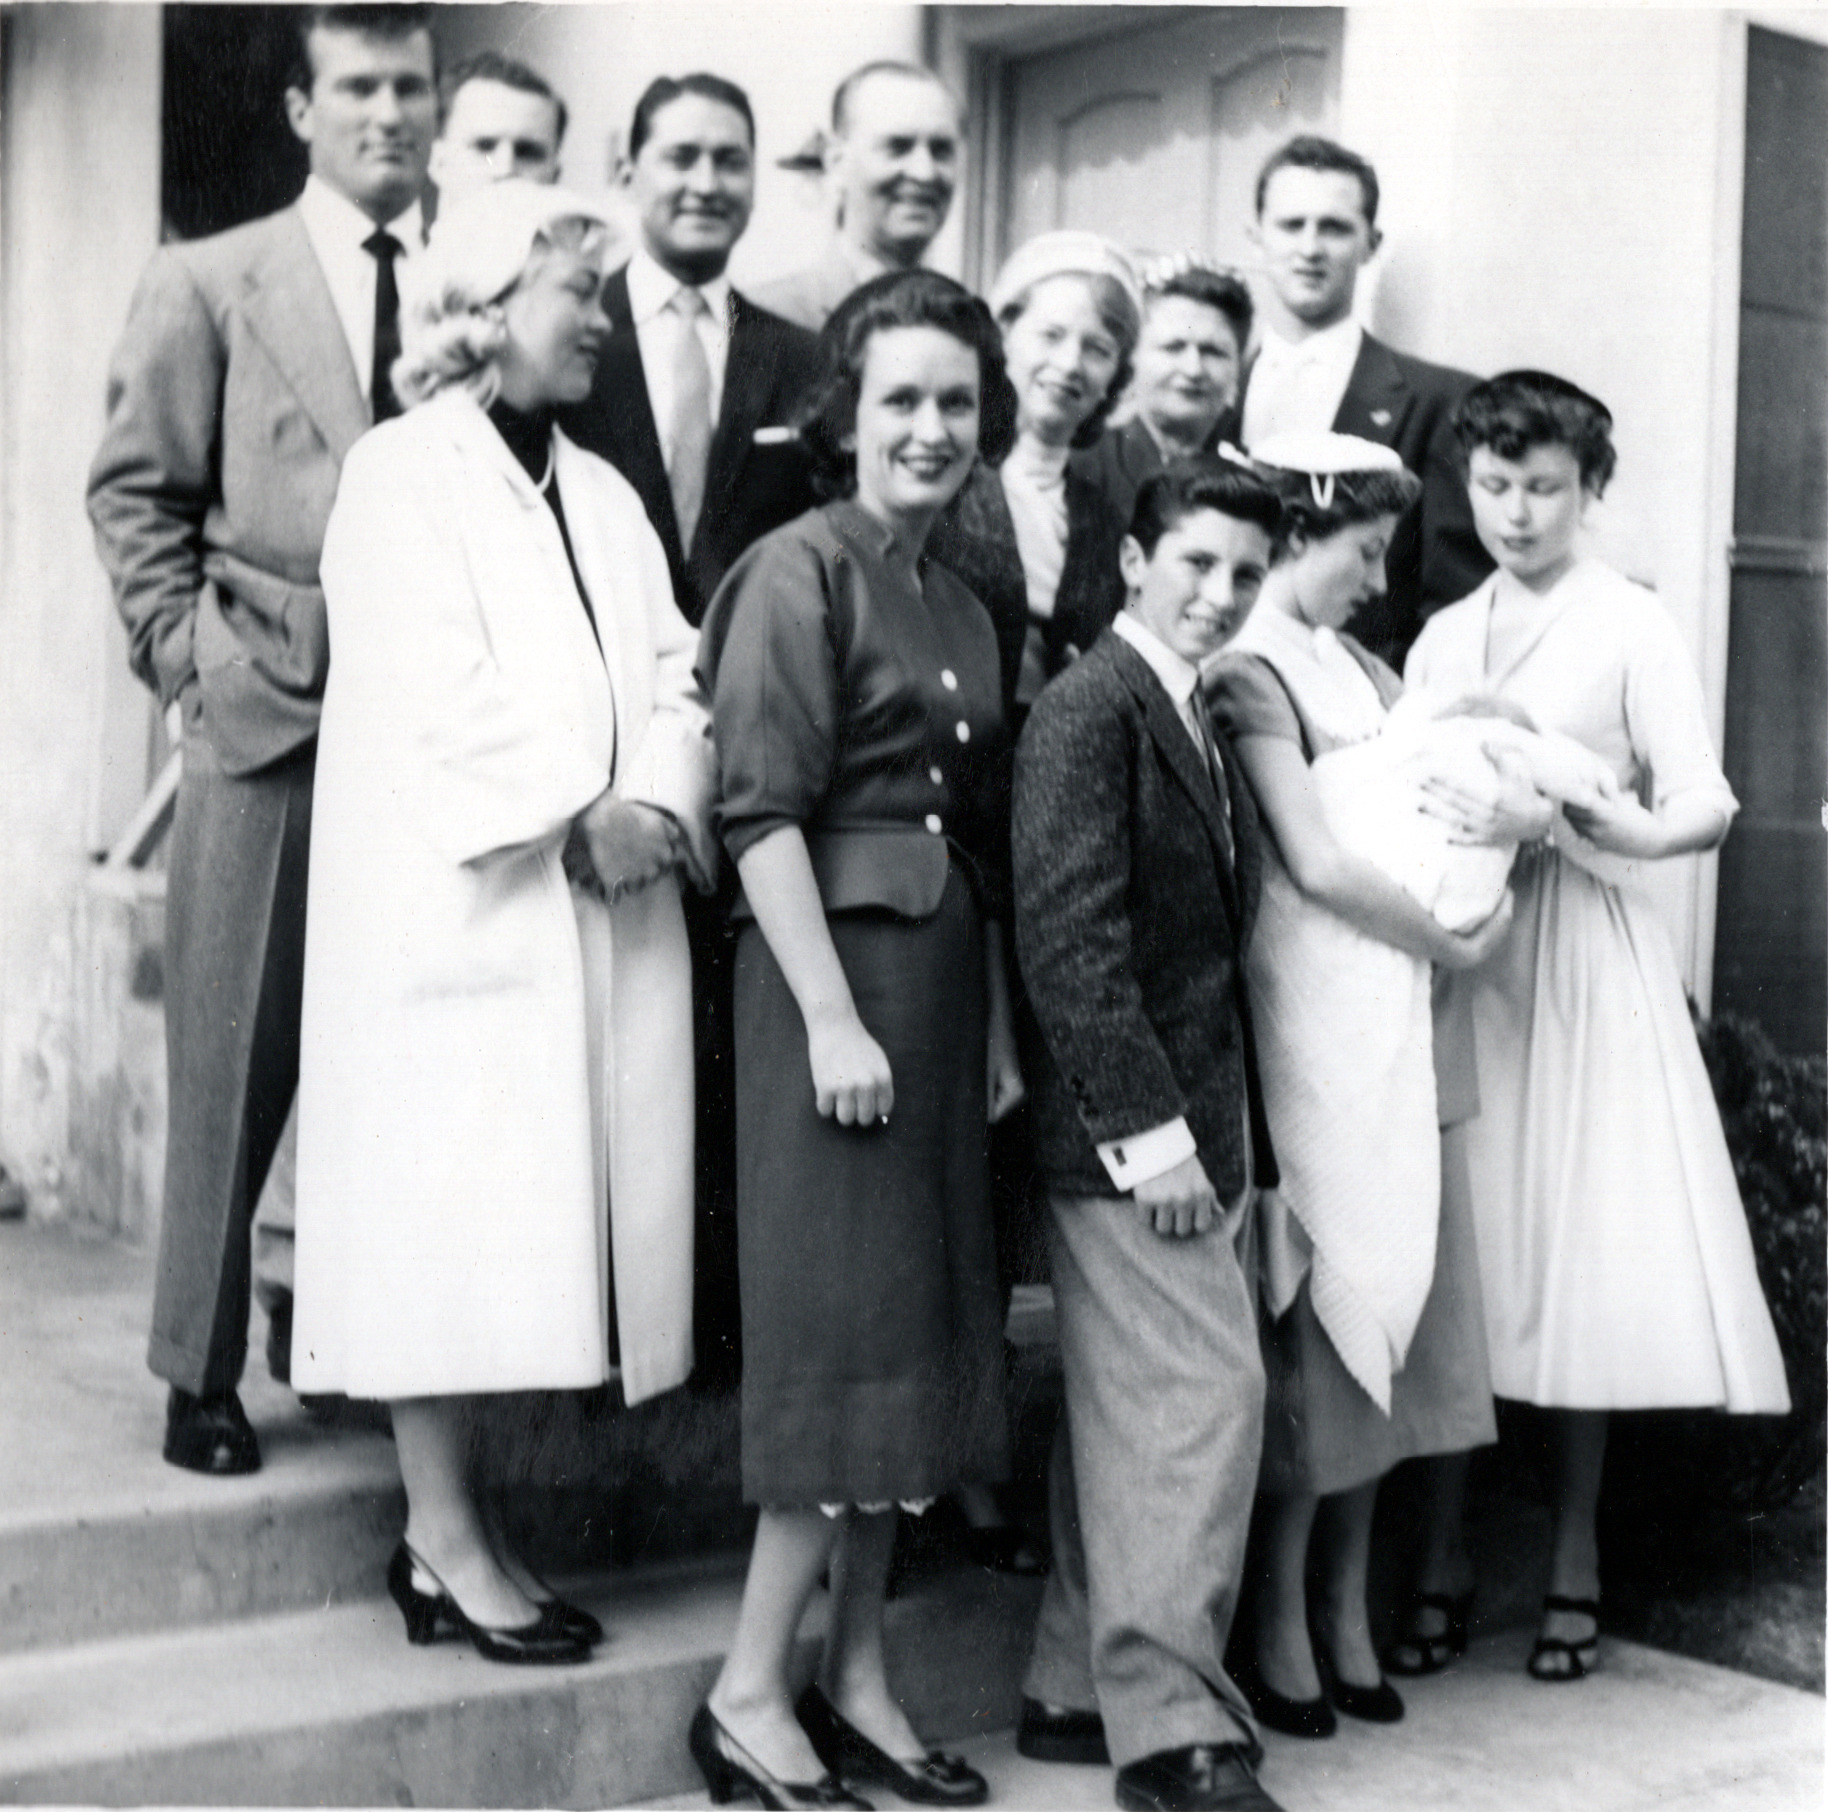 Buddy's Baptism Group - March 1956